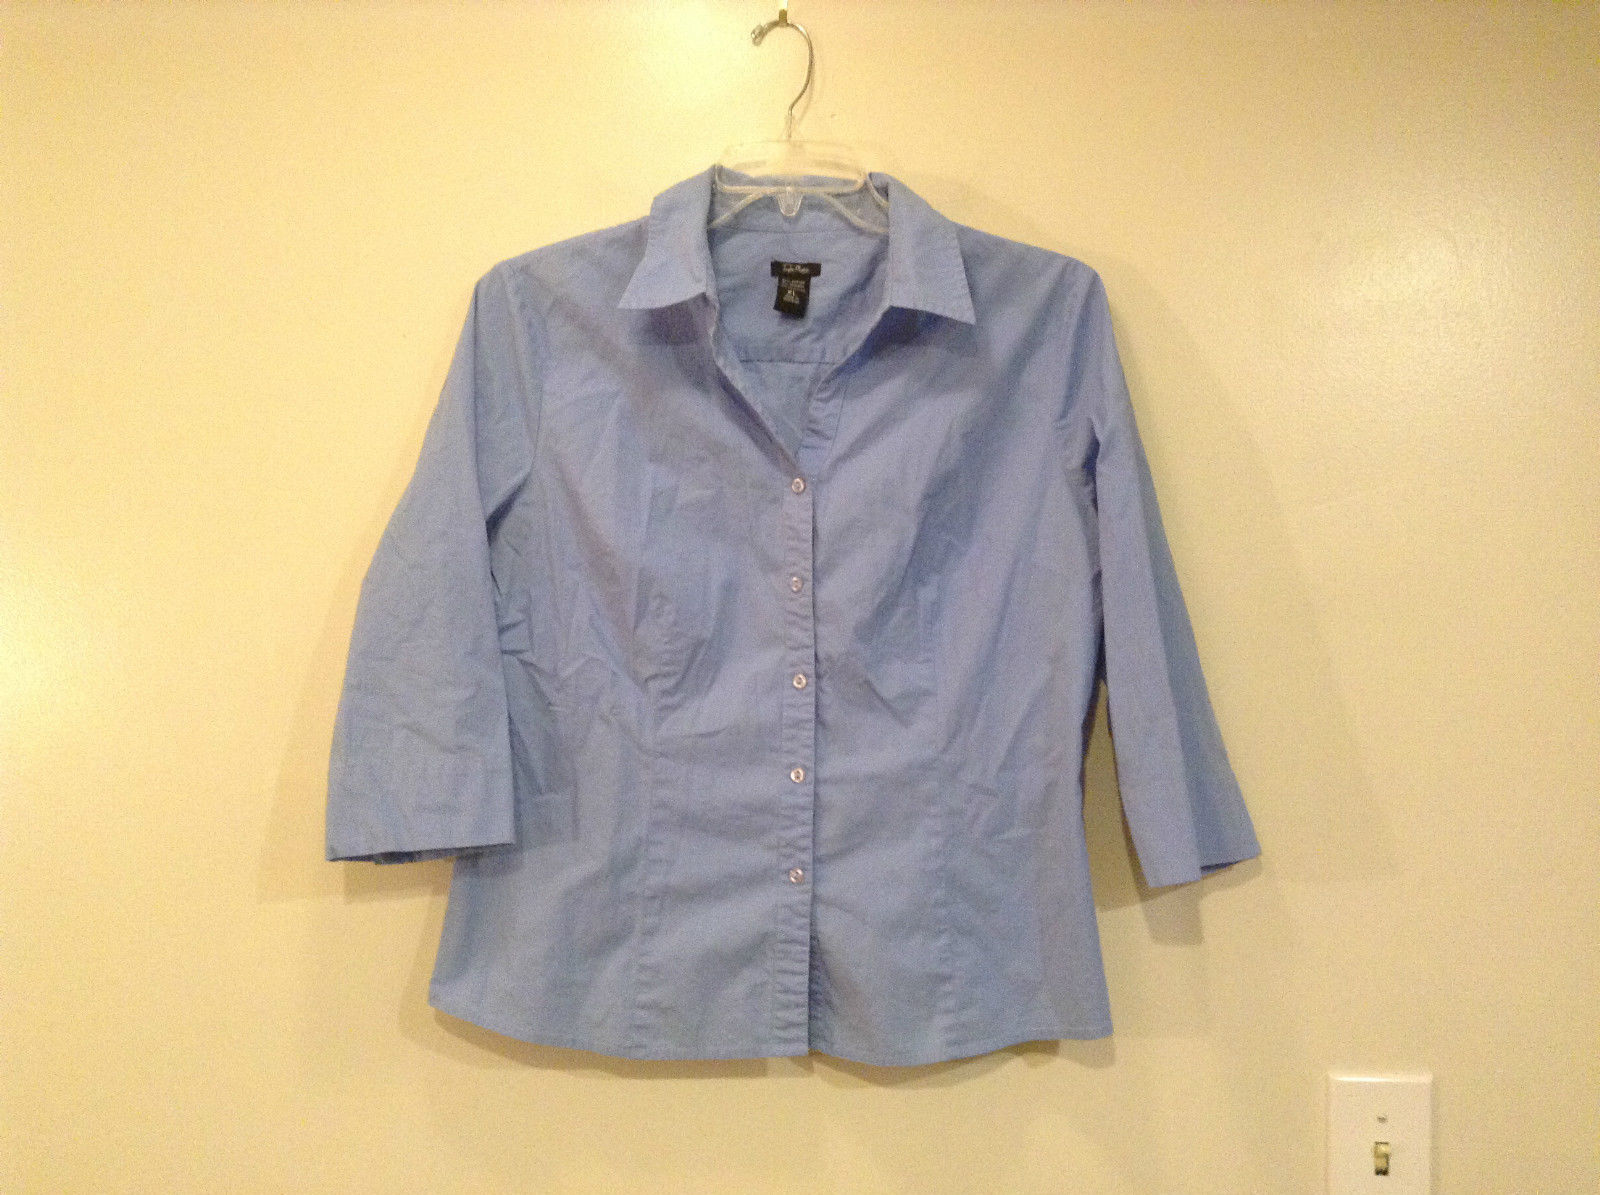 Taylor Marco Blue V Neck Front Buttons Shirt Slits on Sleeves Size XL